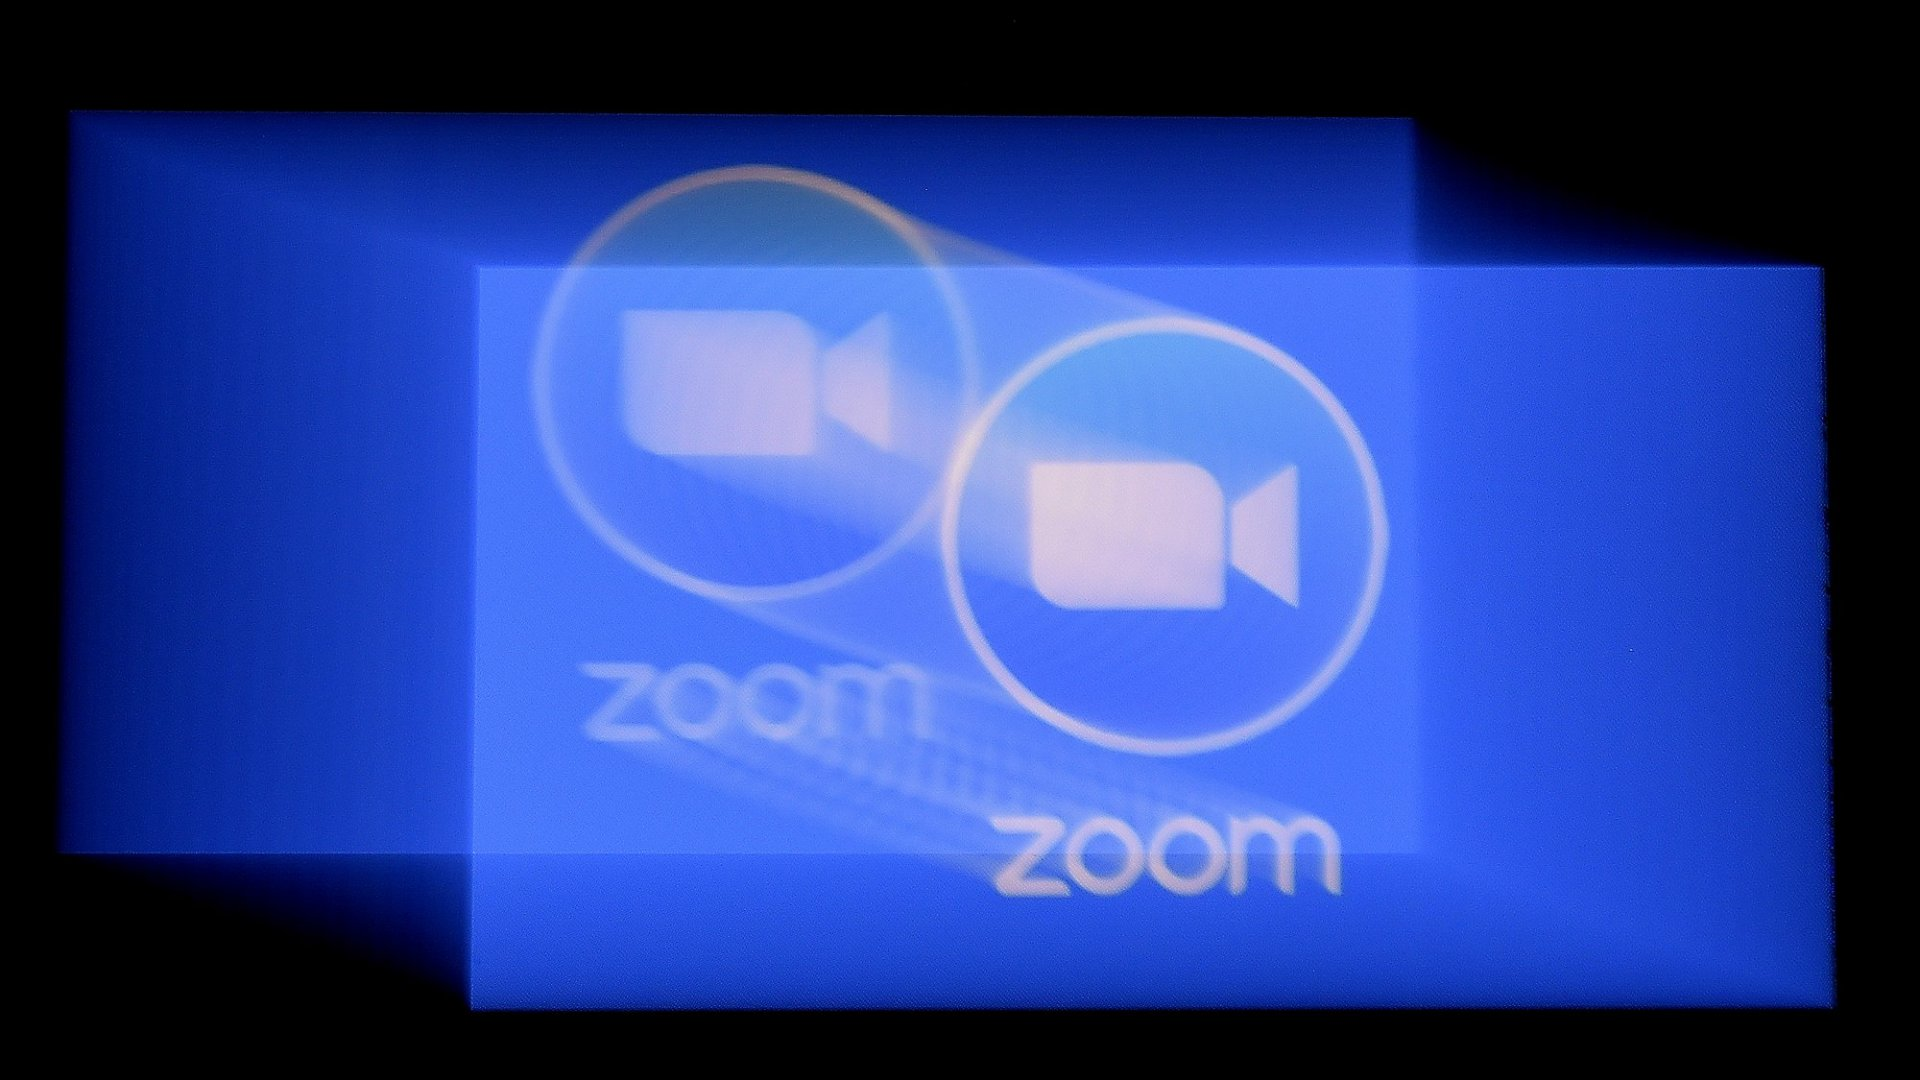 Zoom Will Now Enable Waiting Rooms by Default